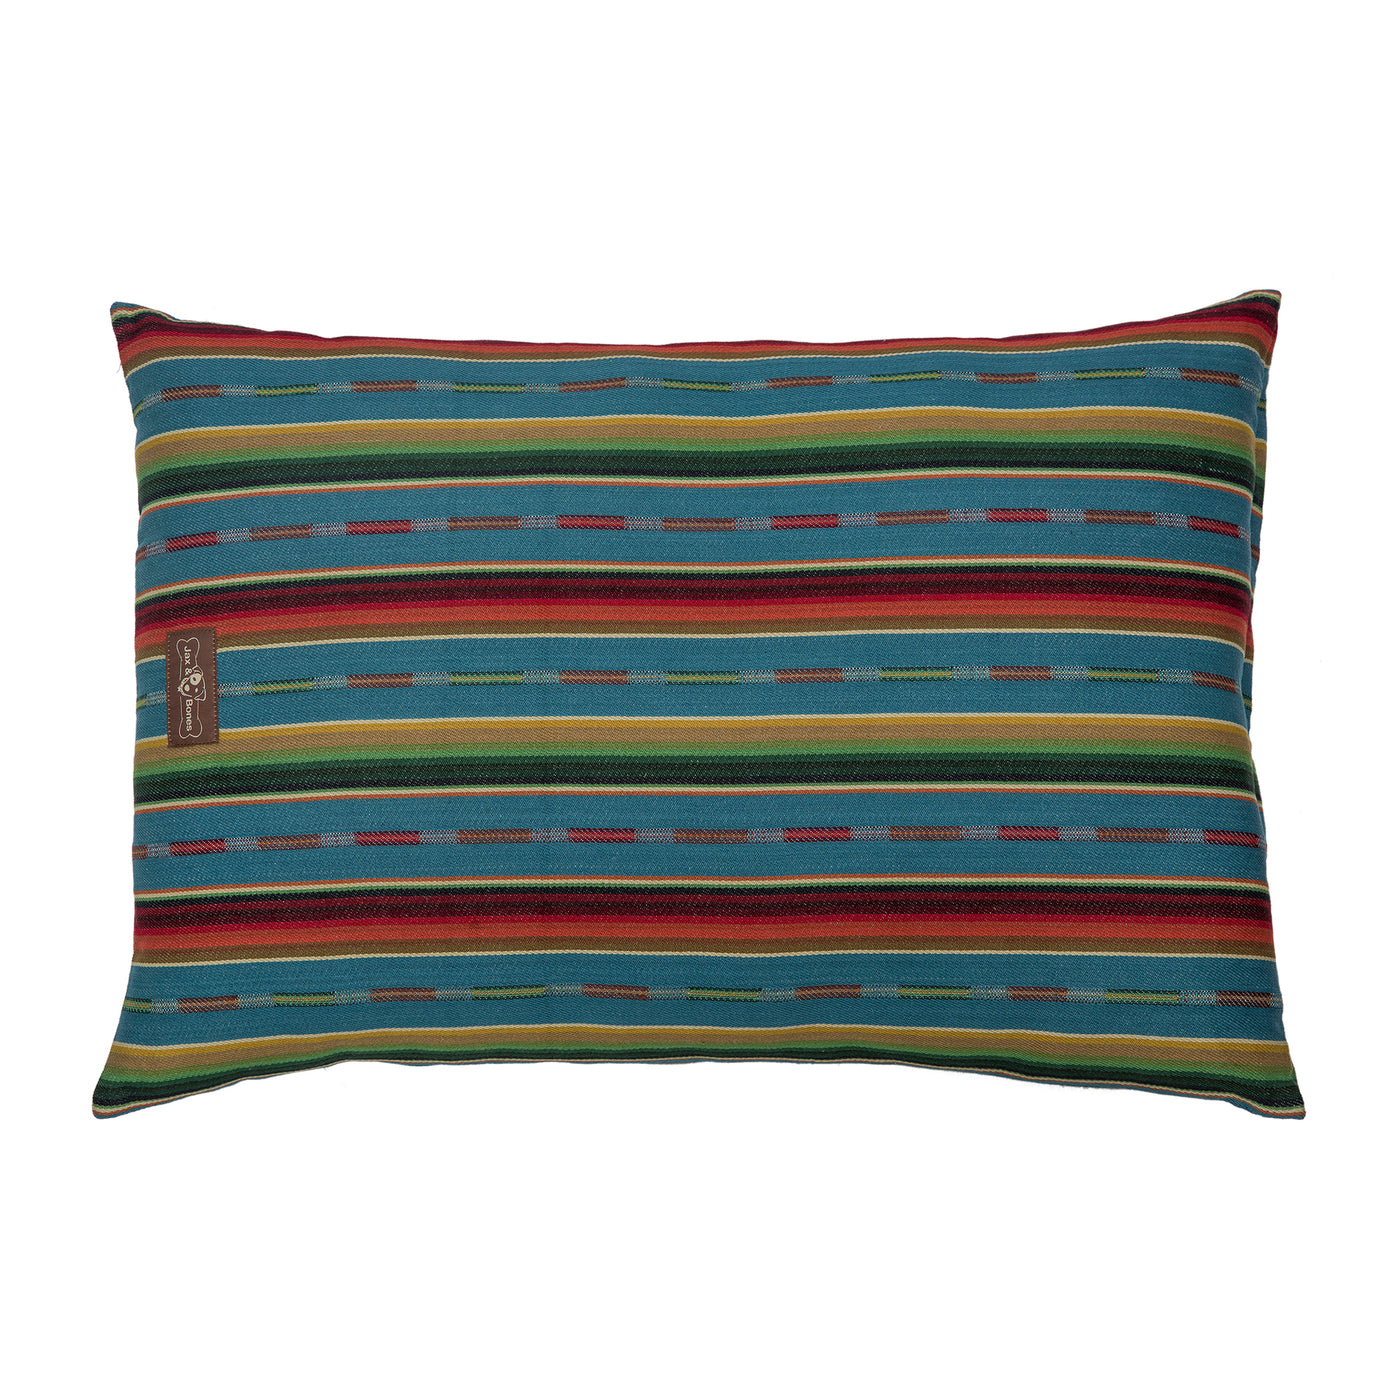 Leisure Joshua Tree Boho Dog Mat